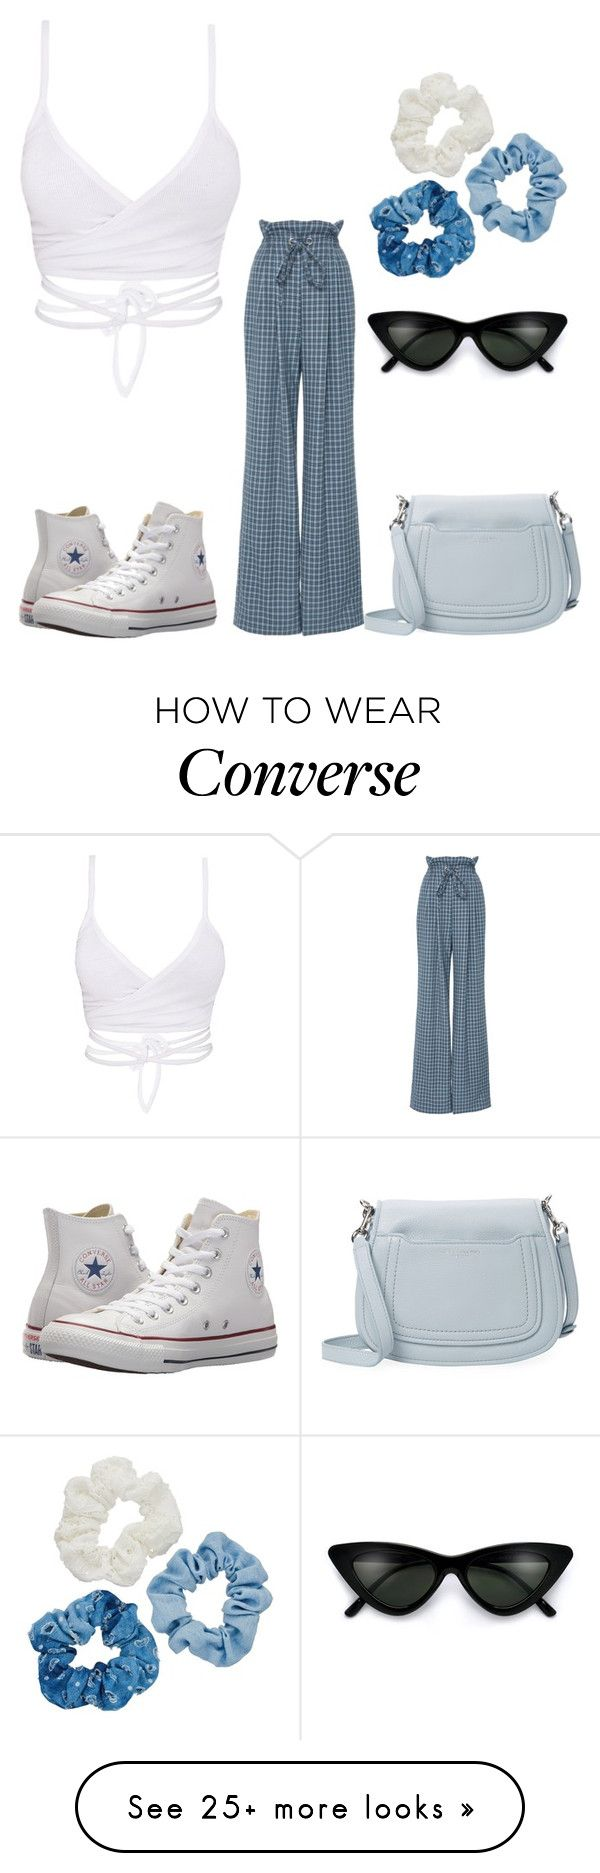 """""""Vibe"""" by anne-maren-weisser-fredriksen on Polyvore featuring Rodarte, Converse, Mudd, Marc Jacobs and vintage"""